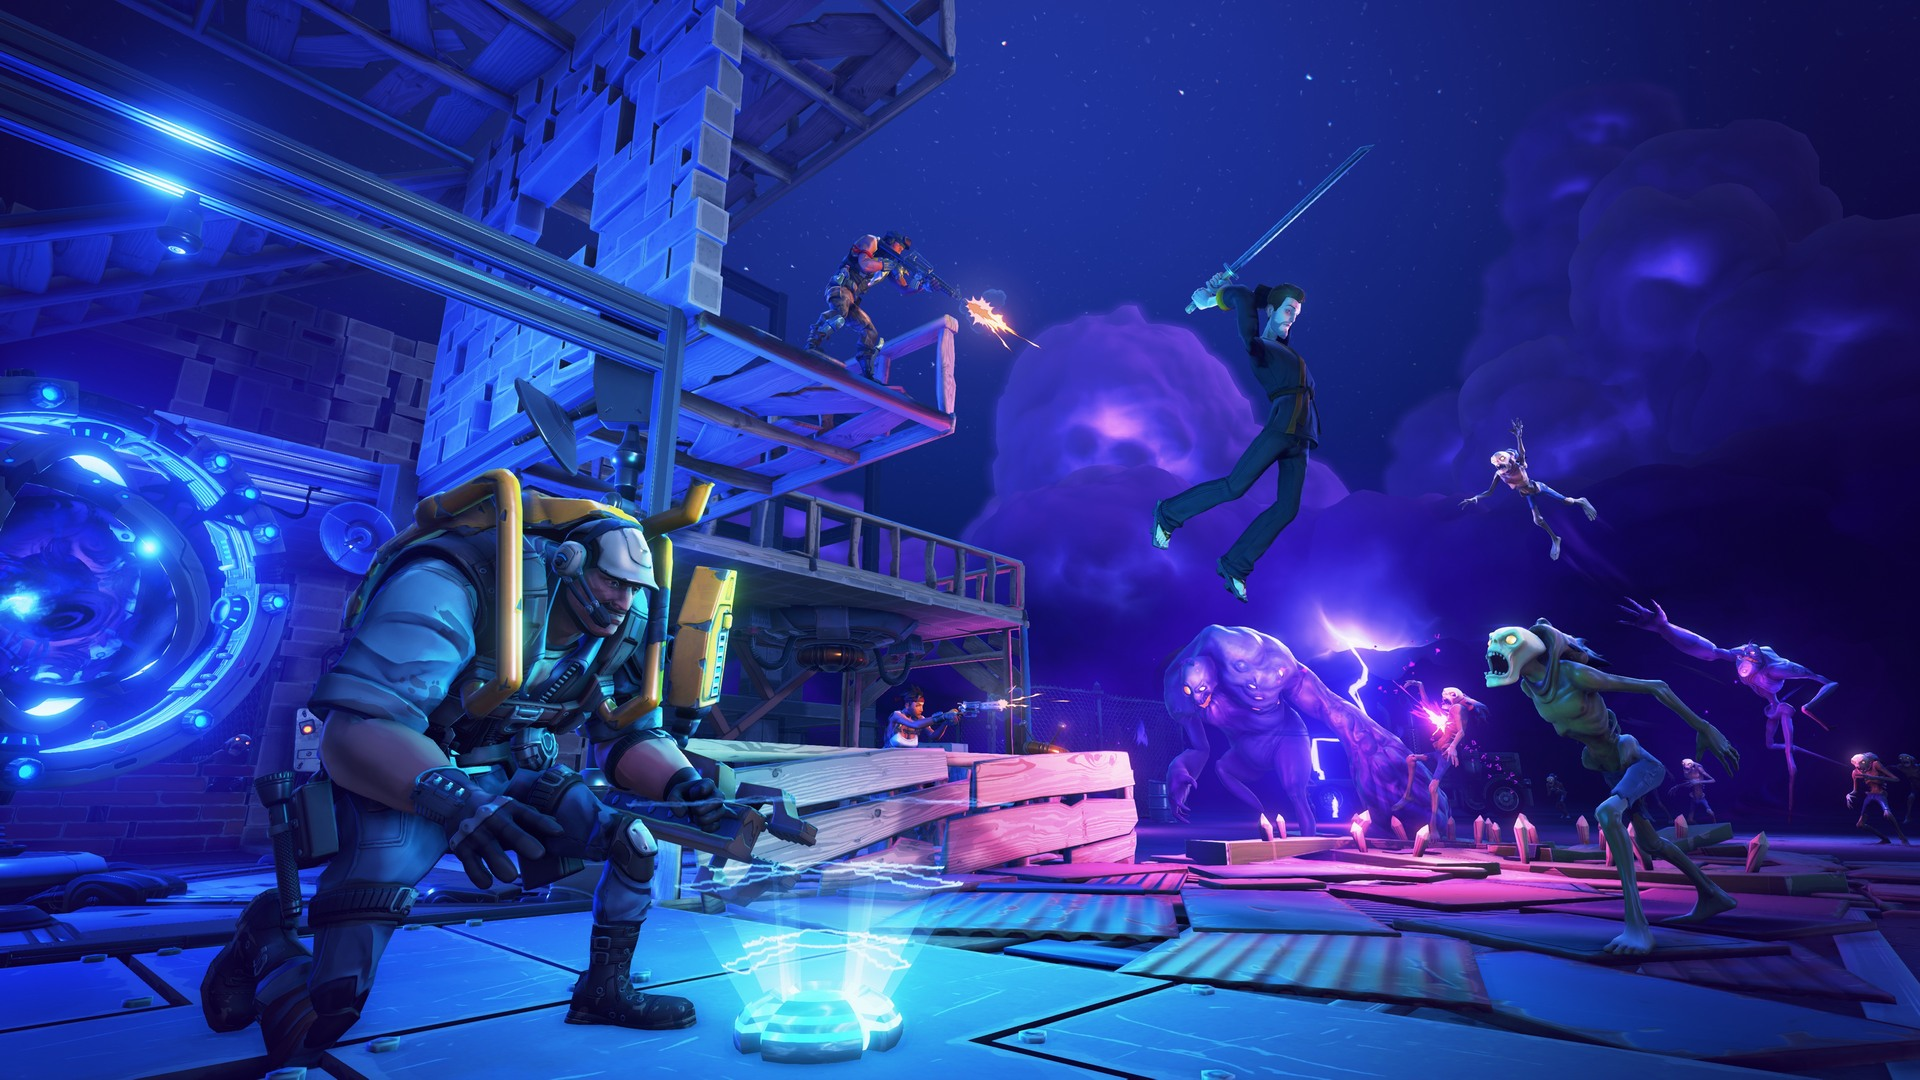 Epic S Fortnite Gets New Screenshots Gameplay Trailer Dsogaming